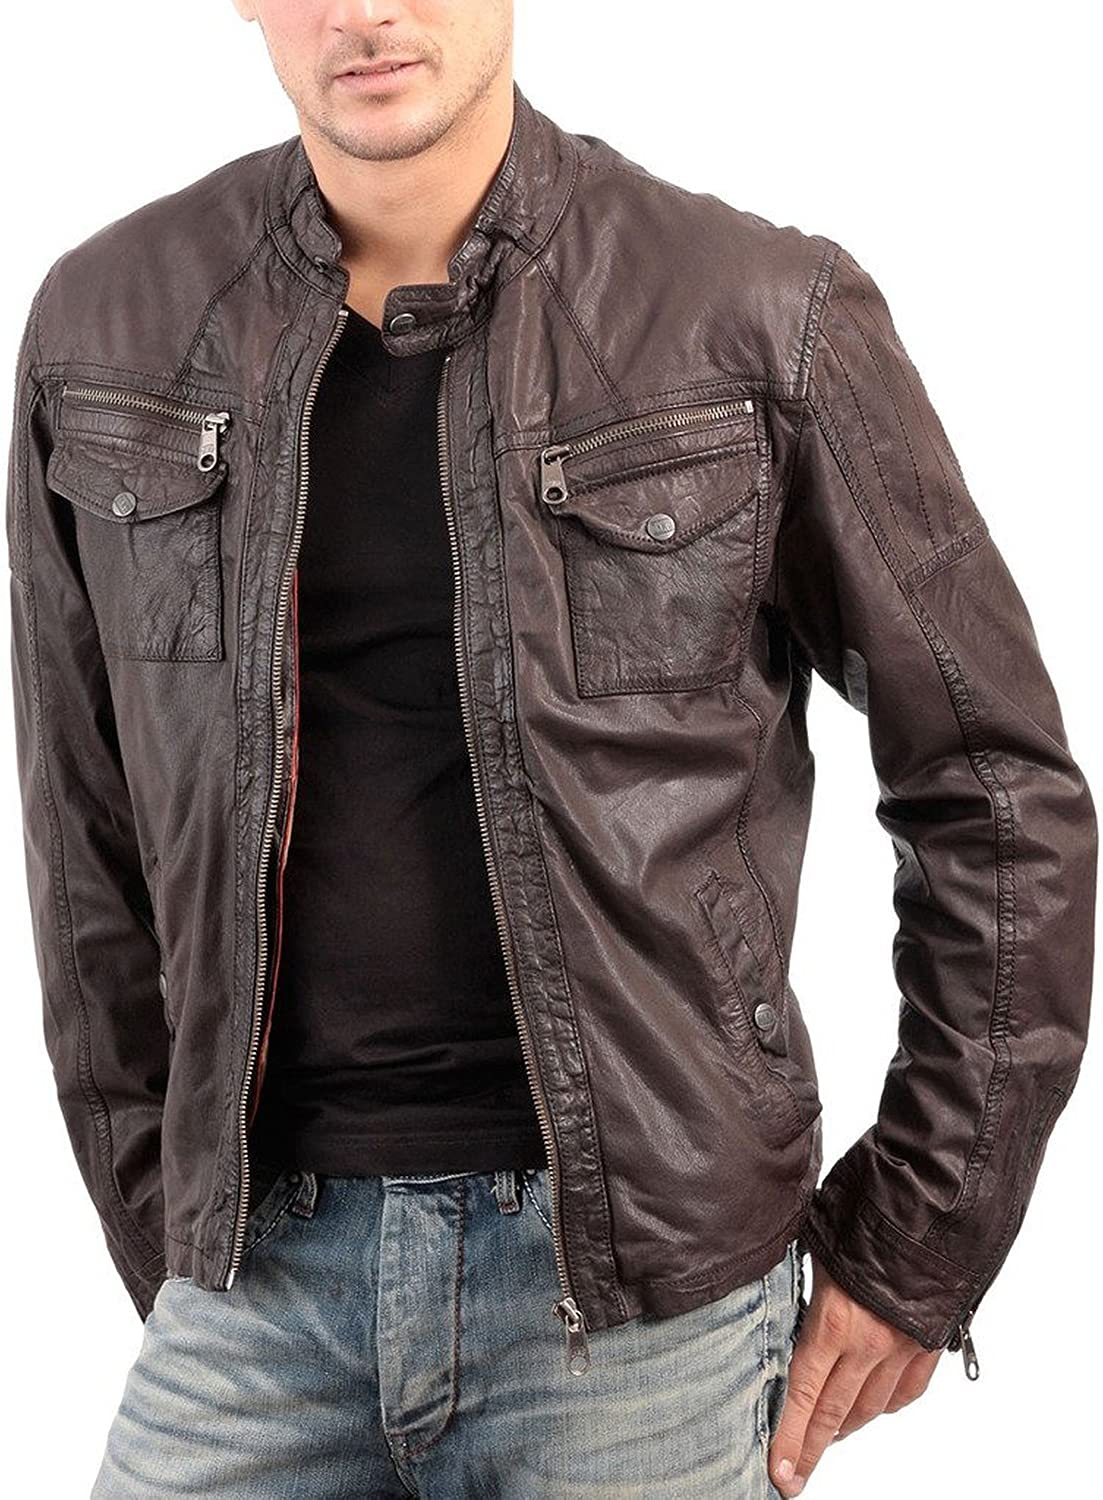 New Genuine Lambskin Leather Designer Jacket Motorcycle Biker Mens S M L XL T904